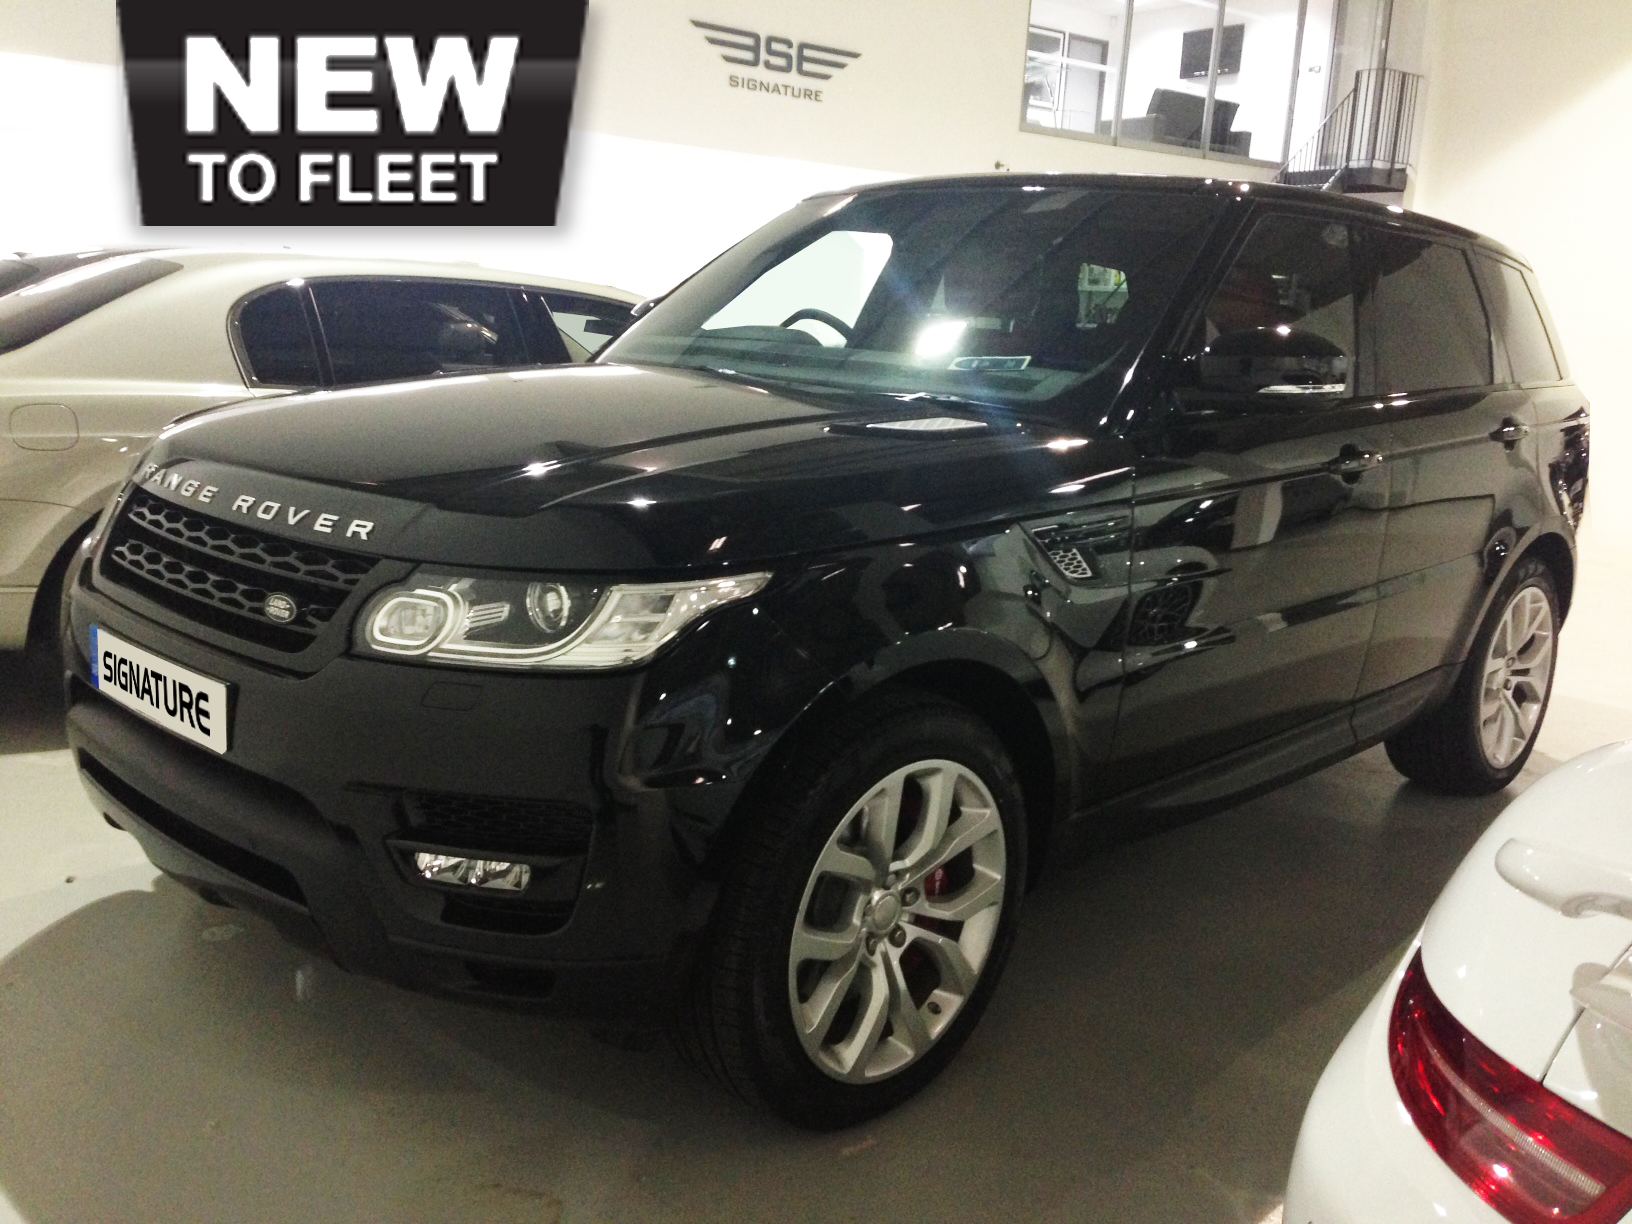 all-new-range-rover-sport-supercharged-autobiography-5.0L